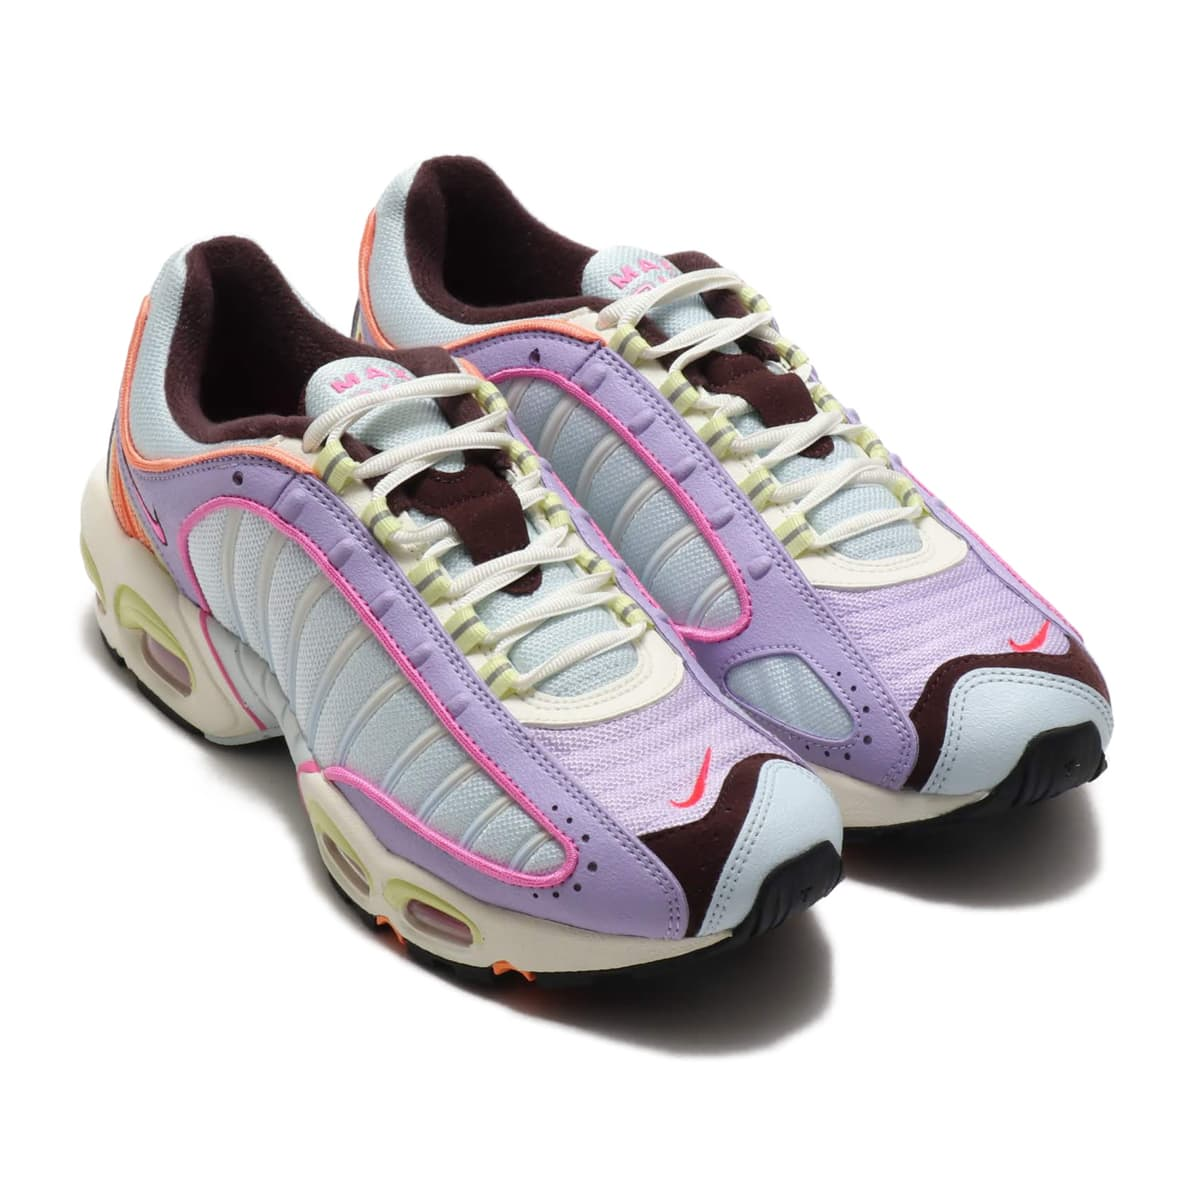 NIKE AIR MAX TAILWIND IV PURPLE AGATE/CHINA ROSE-SAIL-BLUE TINT 19FW-S_photo_large